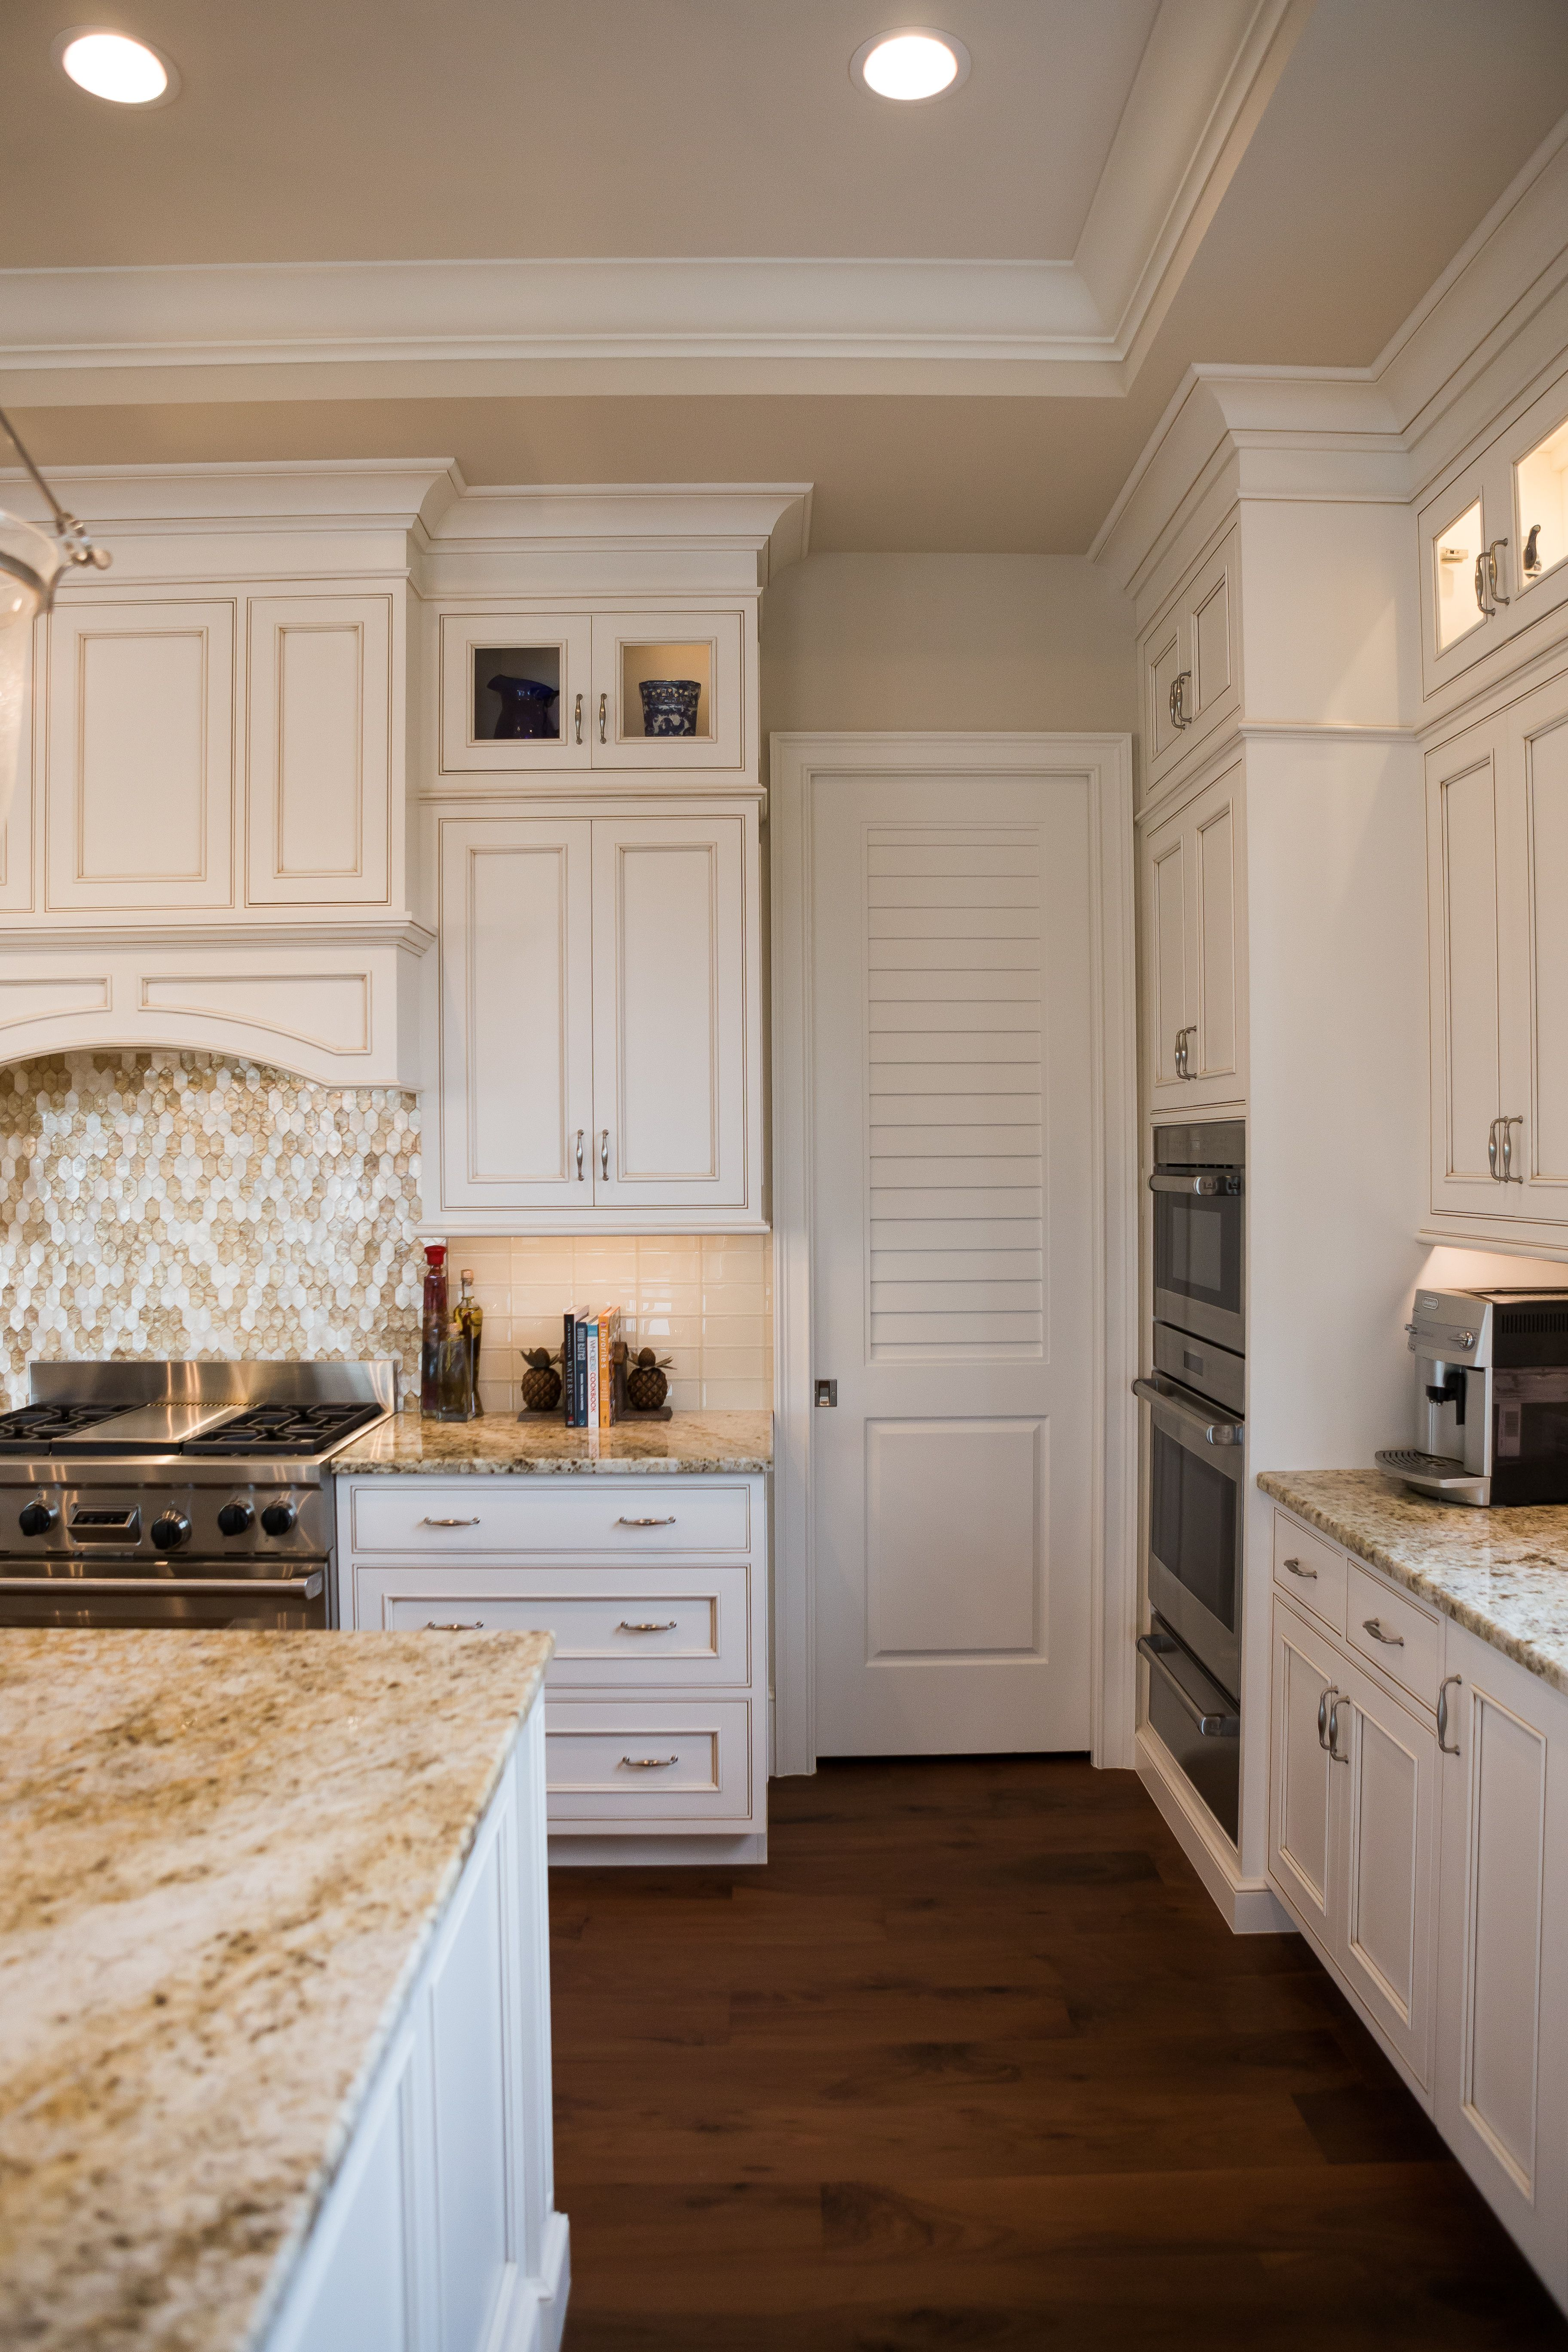 timeless #kitchen #kitchendesign #countertops #cabinets ...